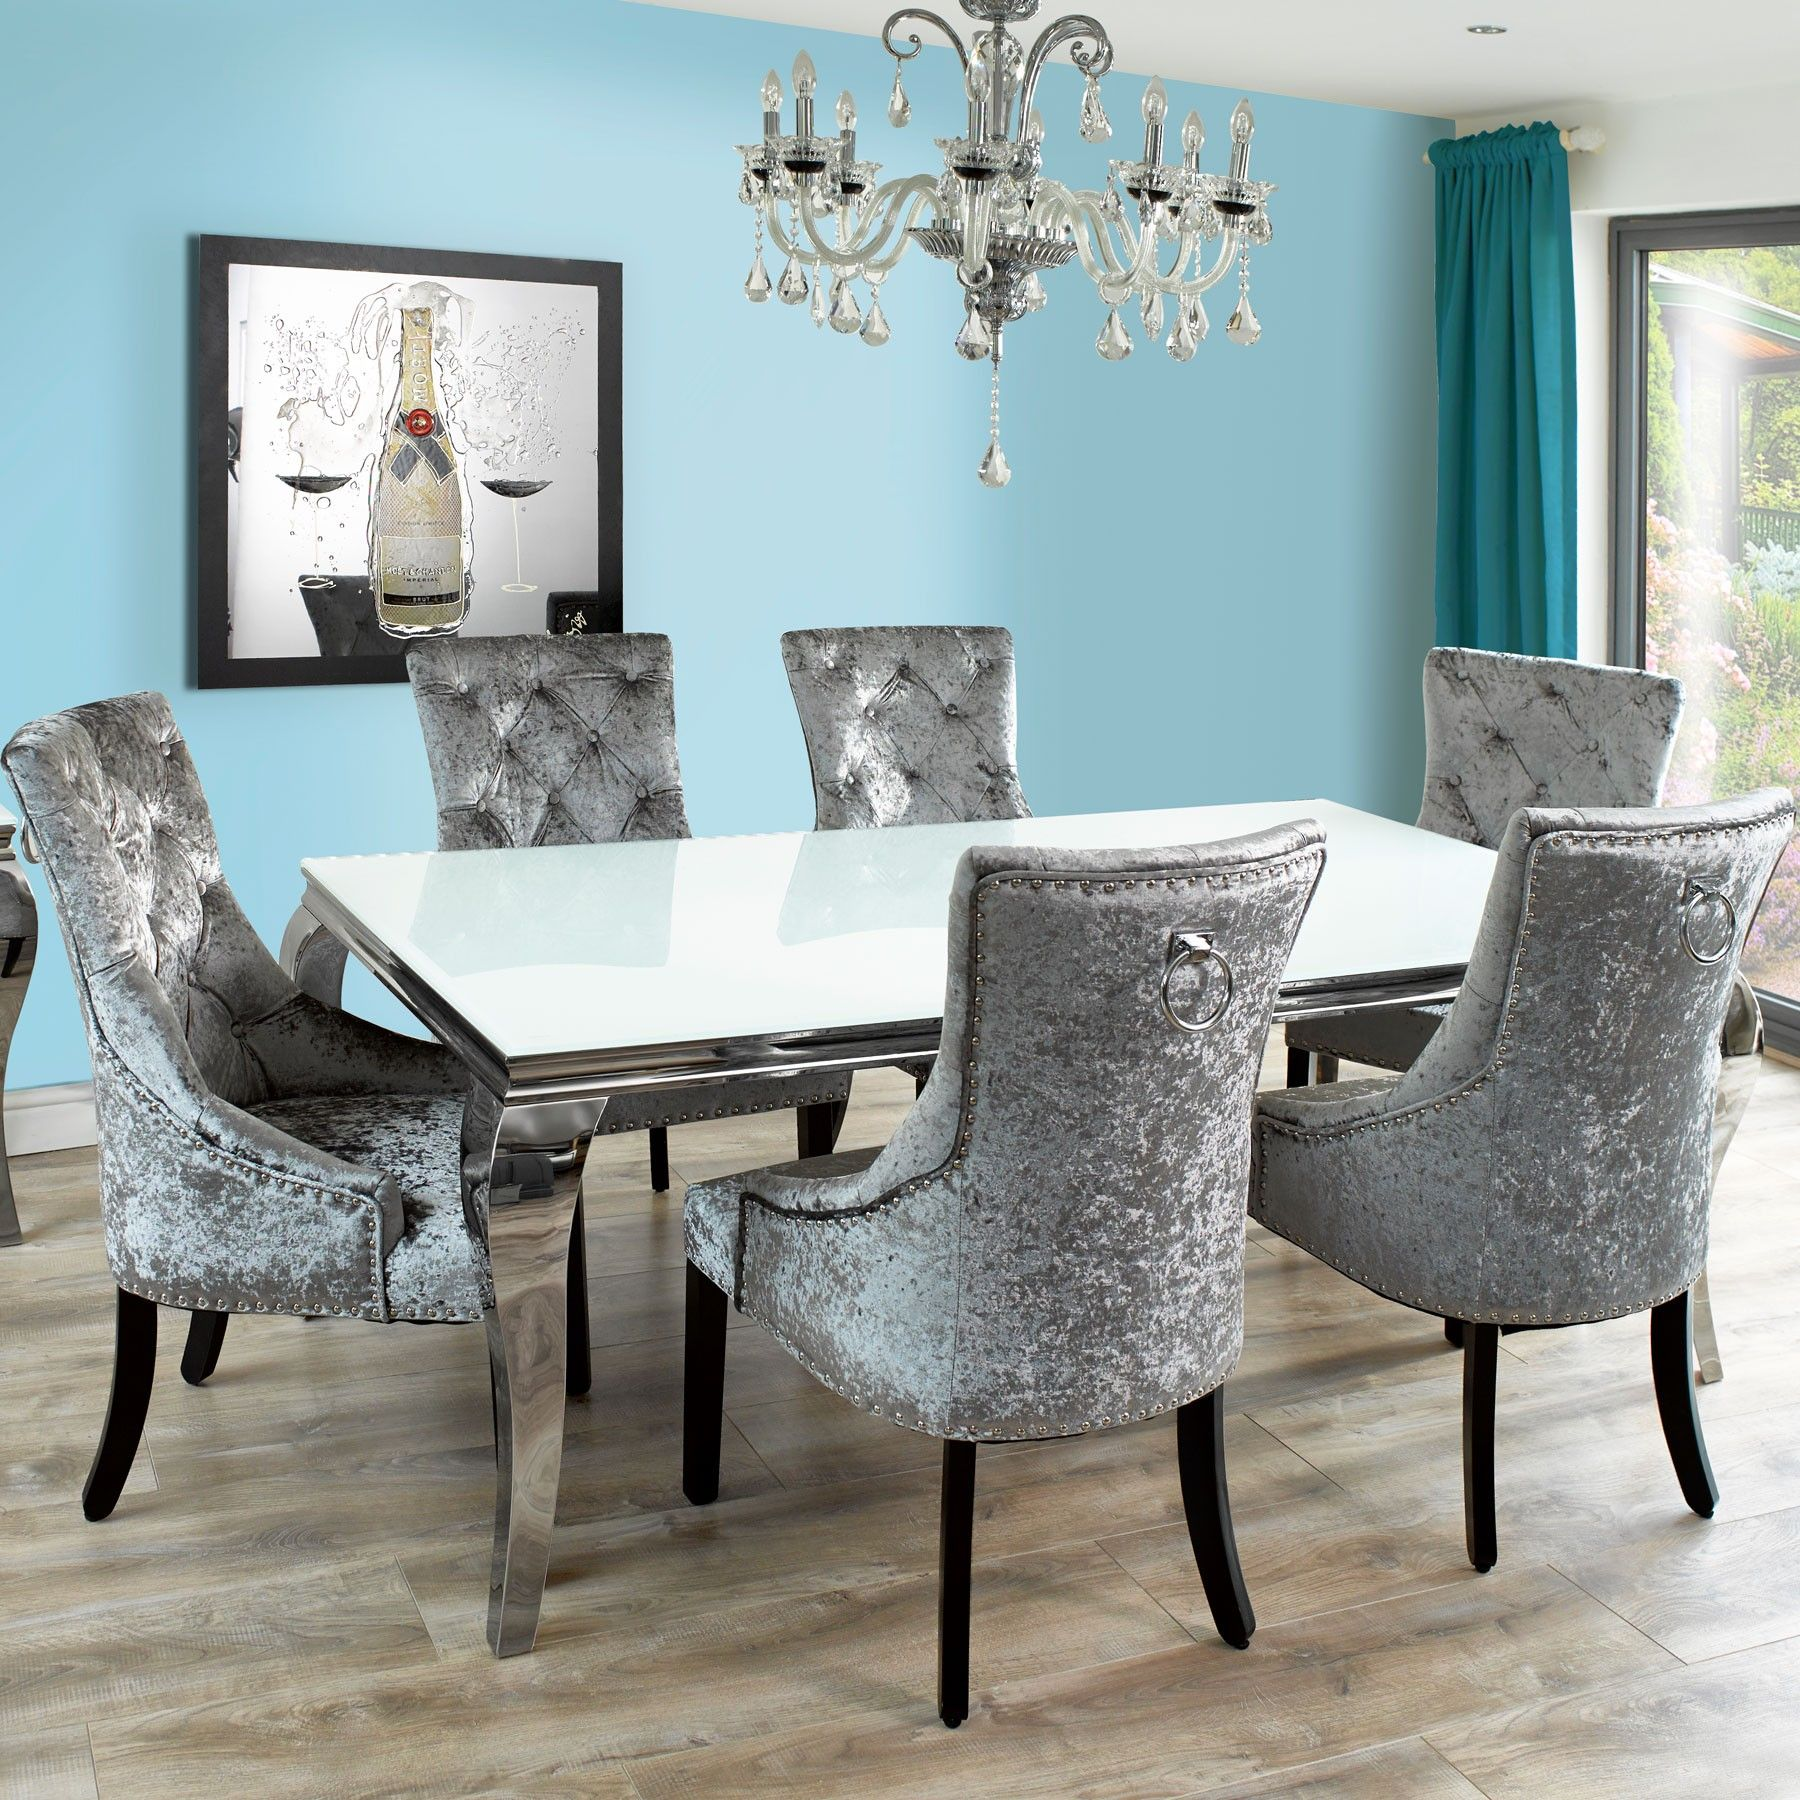 Fadenza White Glass 200cm Dining Table And 6 Silver Chairs With Knocker Contemporary Dining Room Sets Grey Dining Room Blue Chairs Living Room